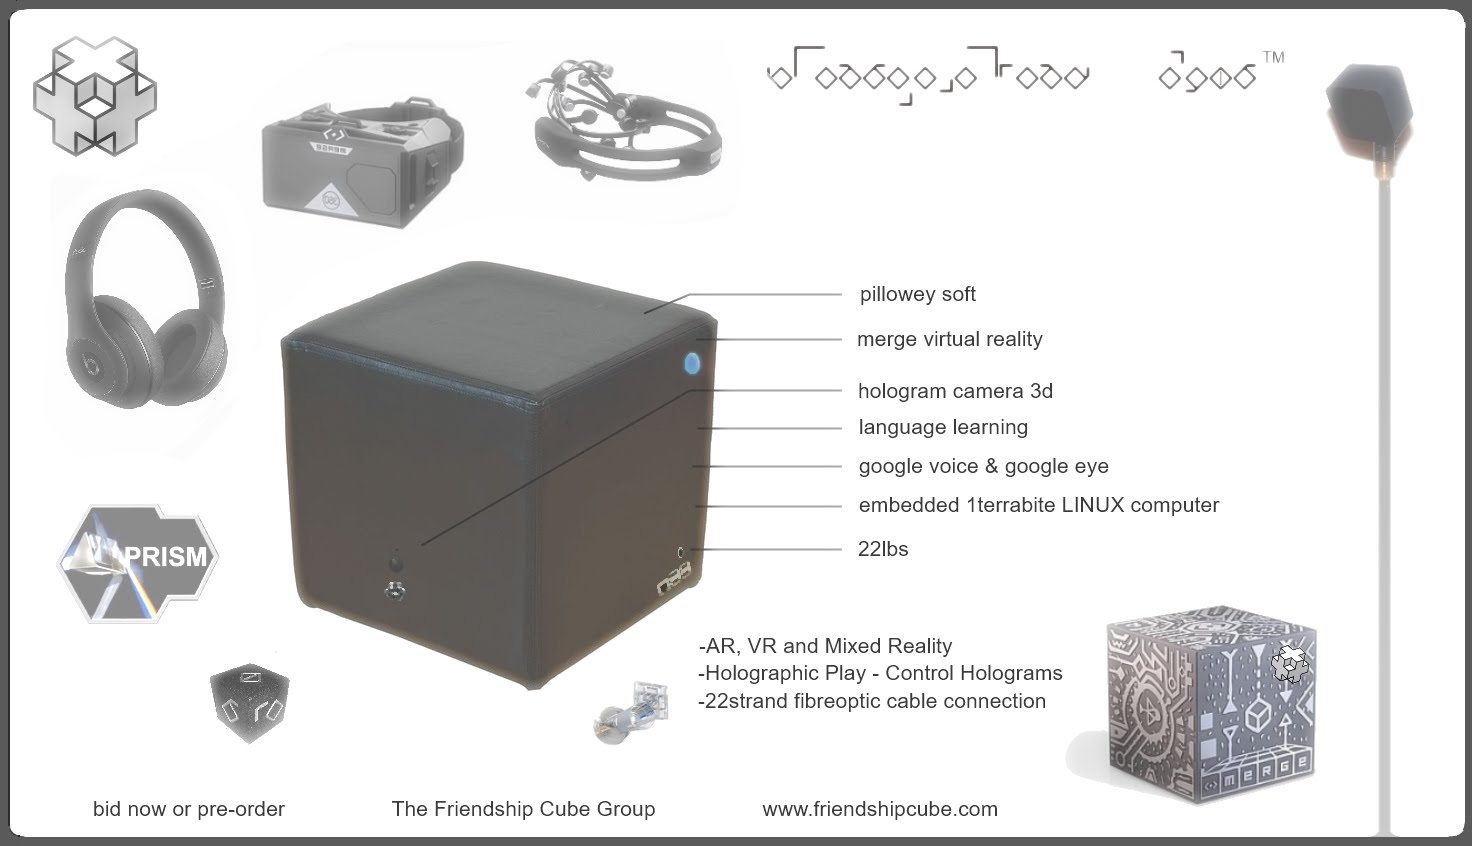 friendshipcube product and trademark